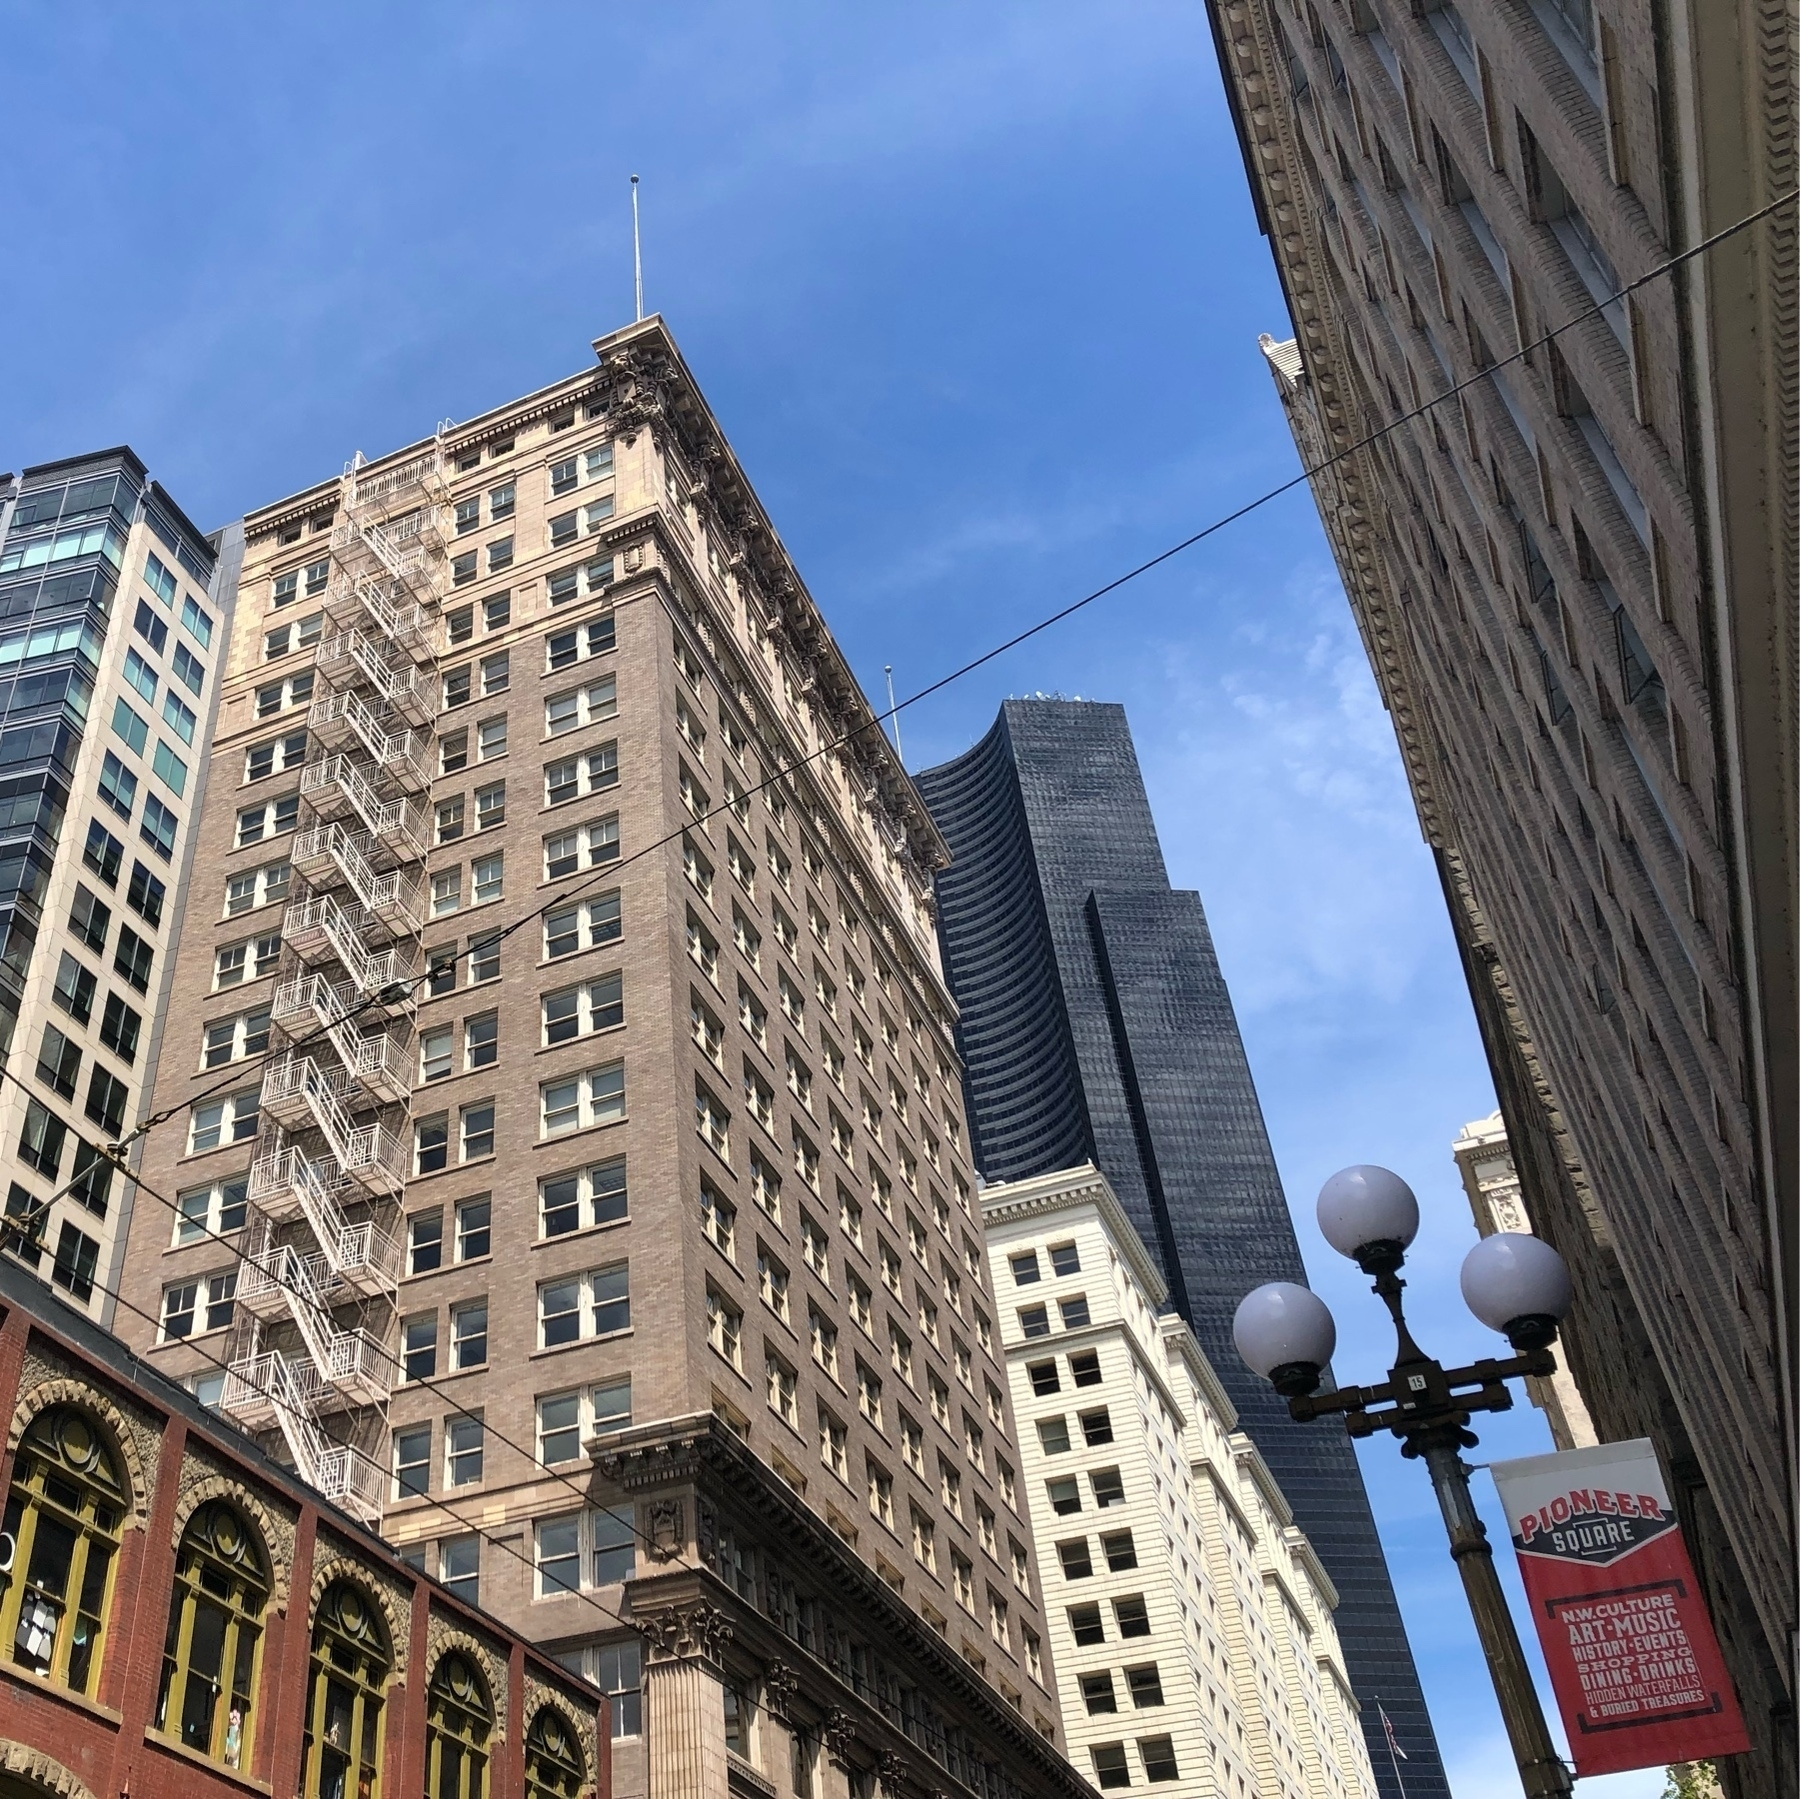 An assortment of city buildings, old and new, glass and brick. One tall brick building has a fire escape zig-zagging up the side.